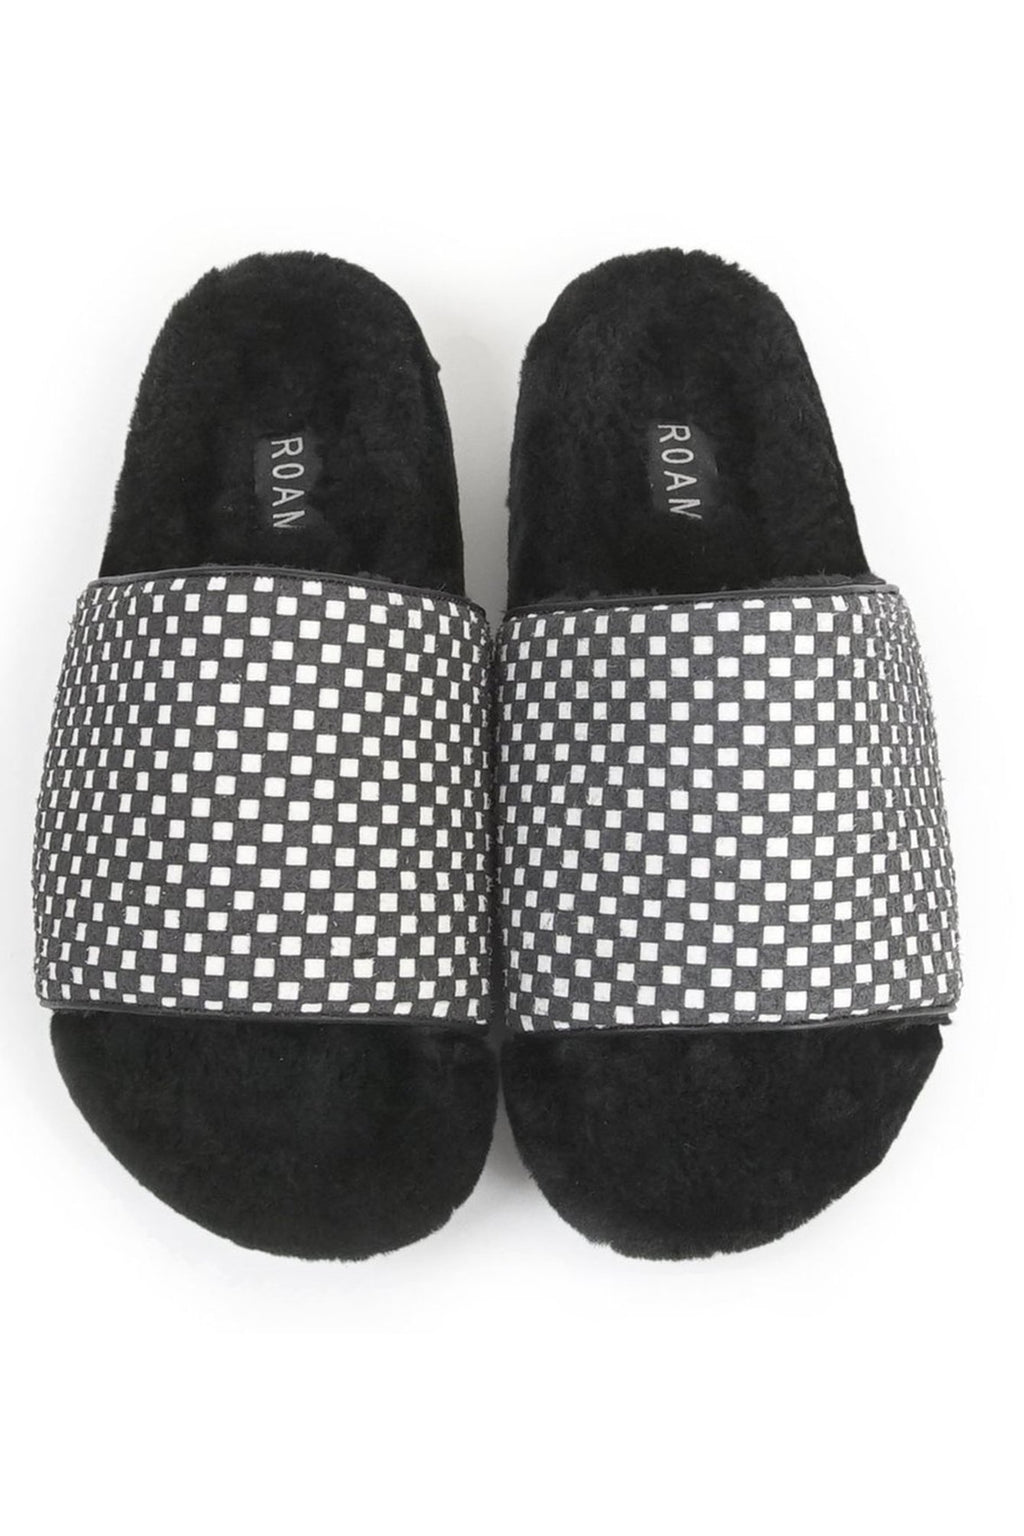 ROAM | Checkerboard + Fur Slide